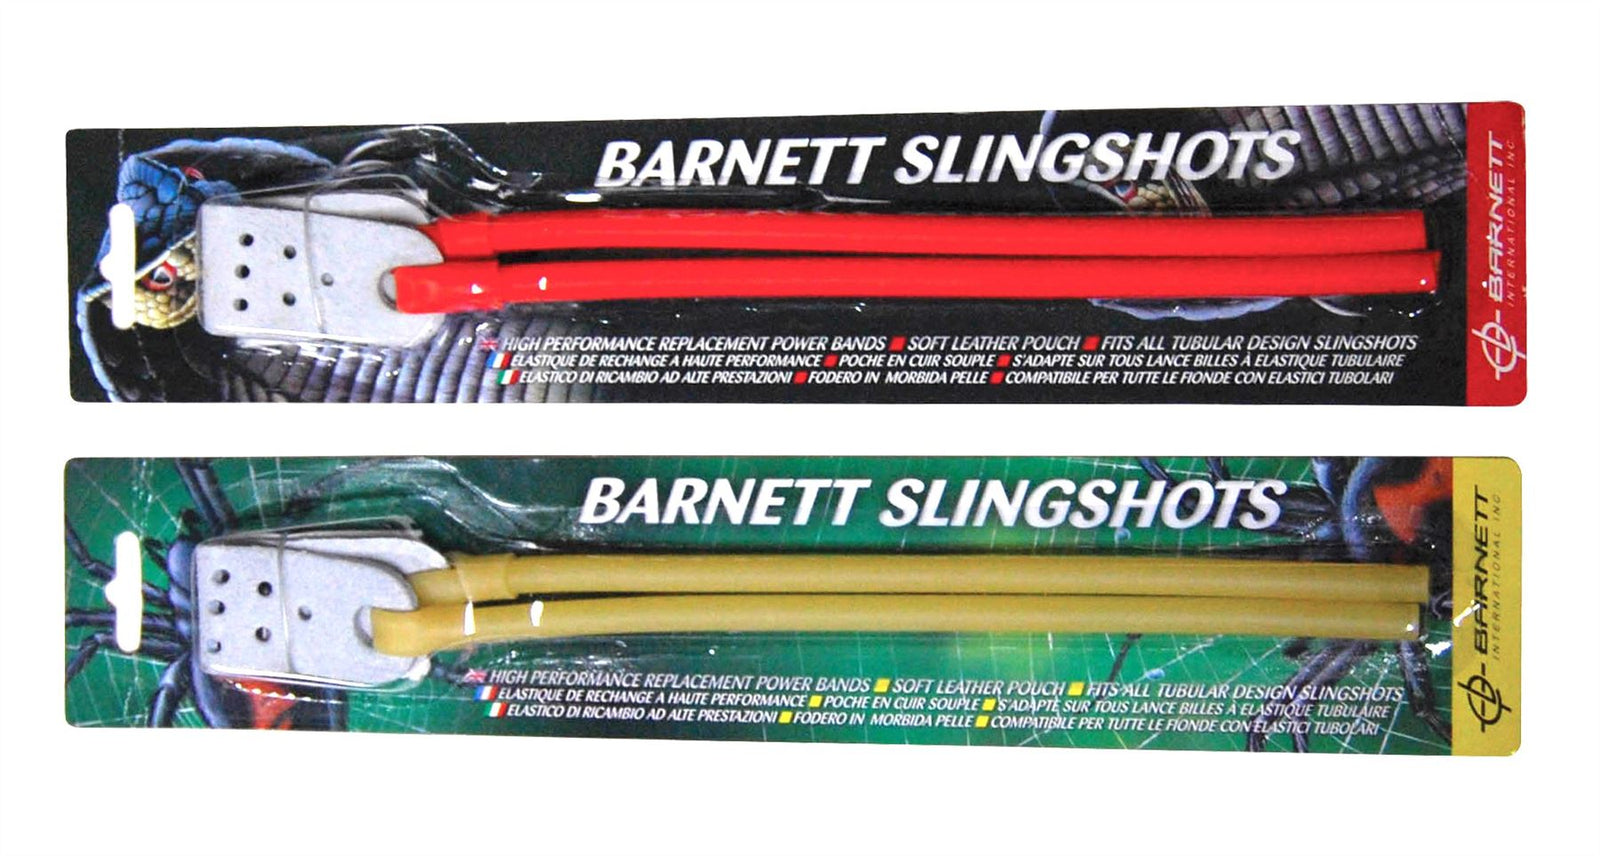 Barnett Slingshot Power Bands